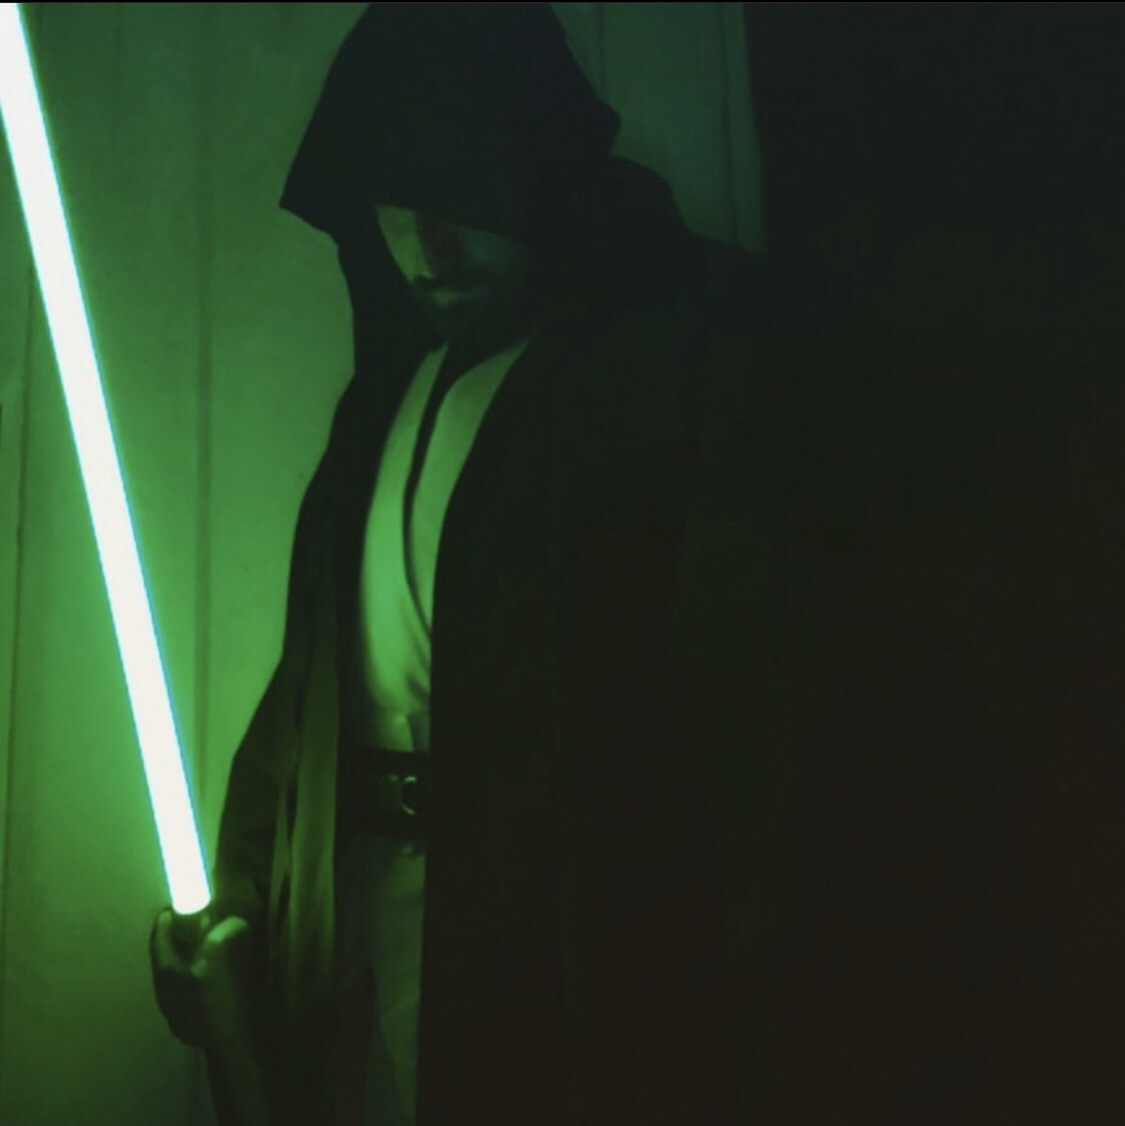 Finally got my Jedi robes and saber! I feel just as awesome as I did dressing up as a kid!